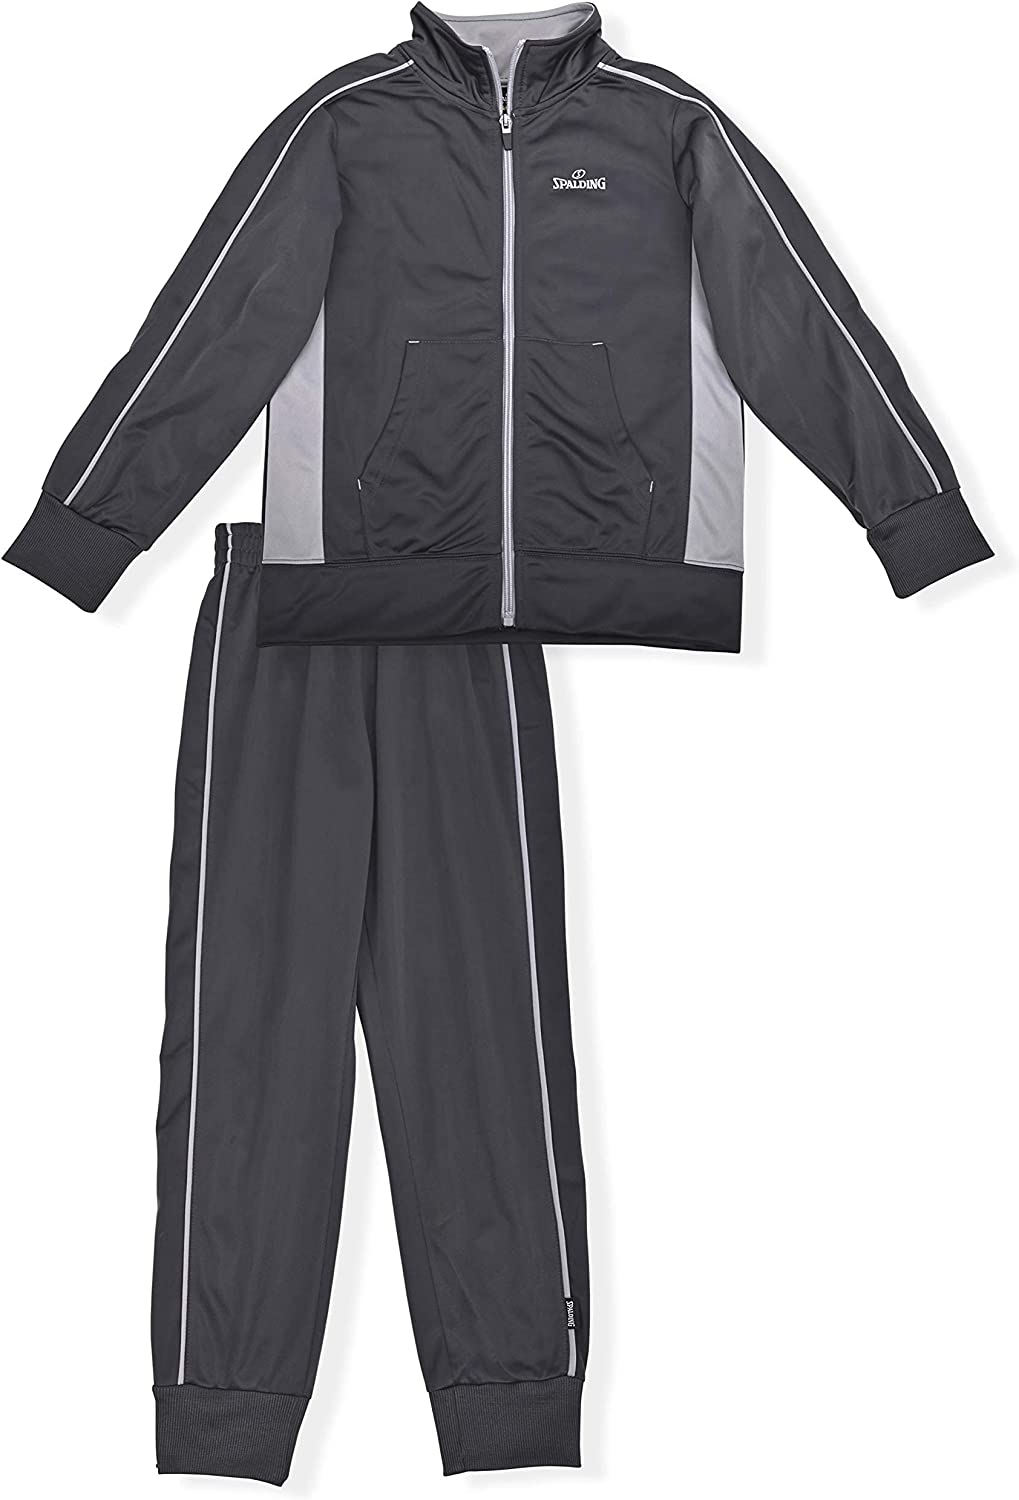 Spalding Boys' Tricot Two Piece Sweatsuit: Clothing